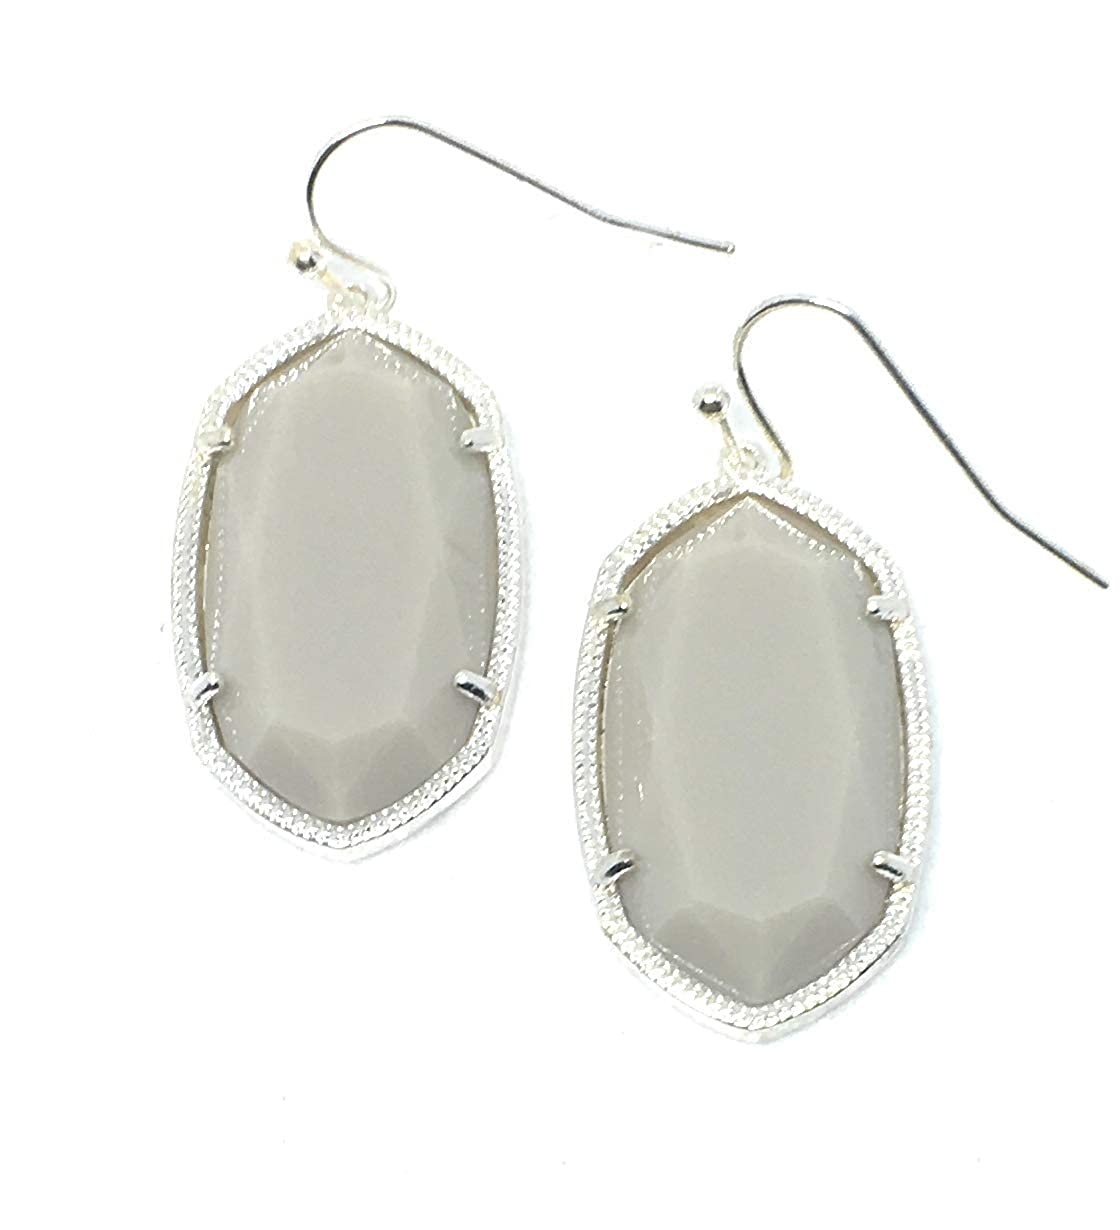 Silver Metal Tone Inspired Fashion Jewelry Candy Colors Oval Earrings in Silver and Gold Metal Tone in Grey